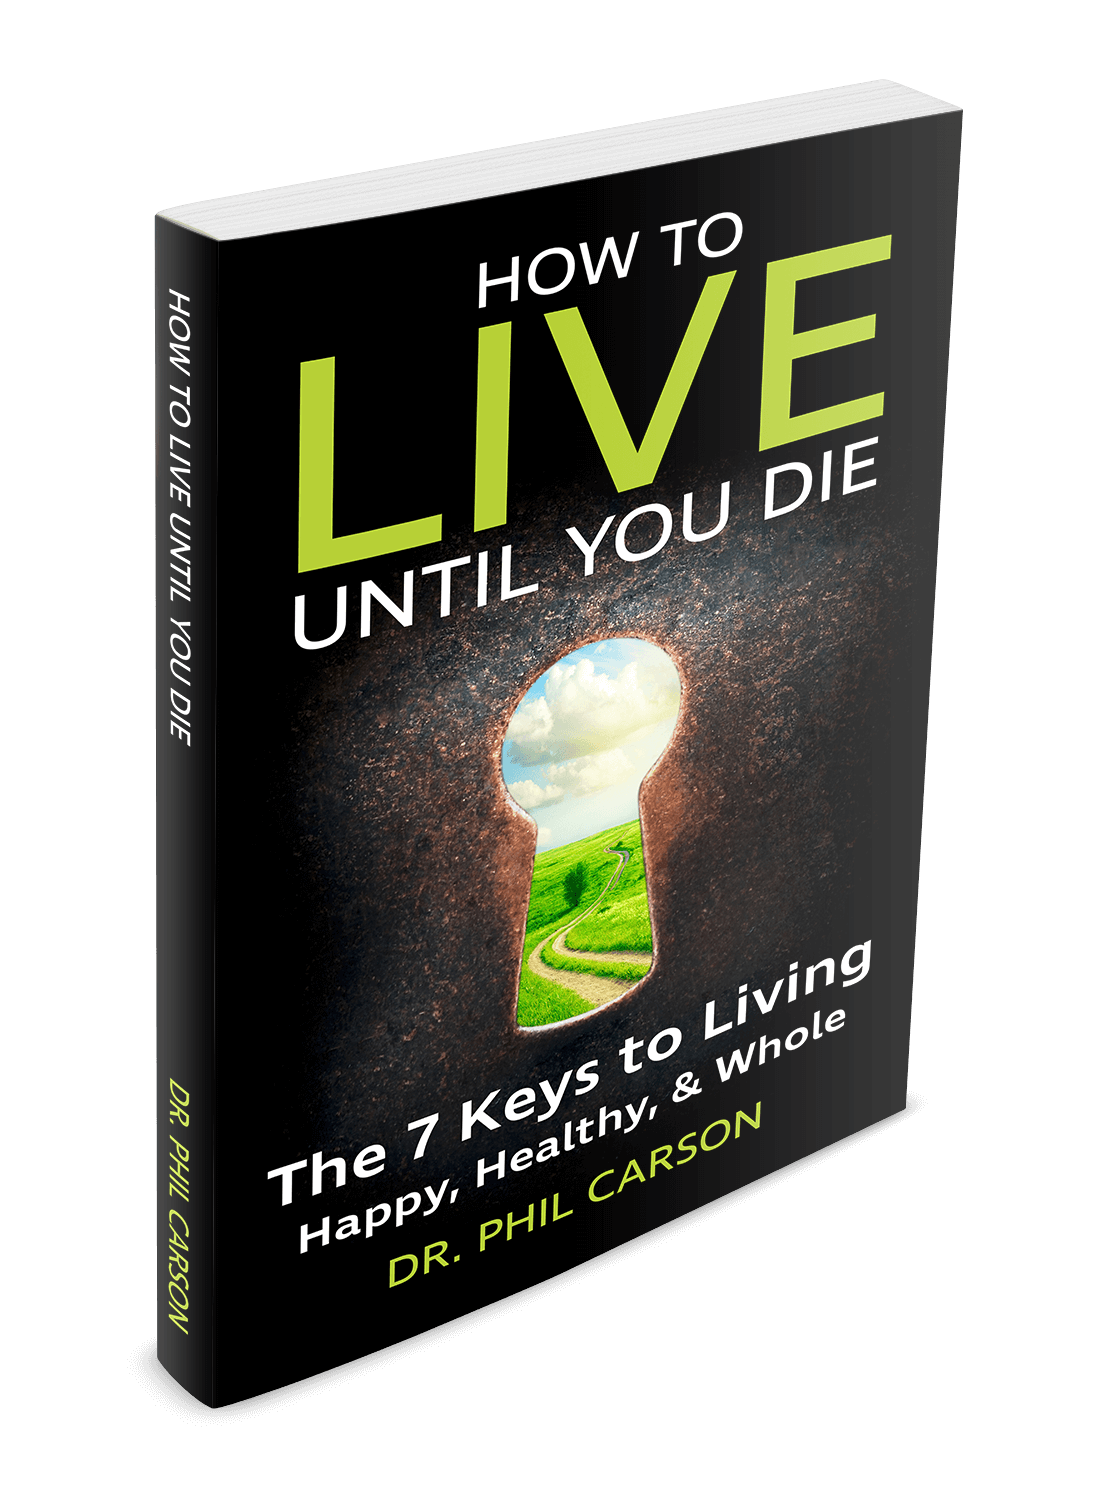 How-to-Live-Until-You-Die-Introduction-mp3-image